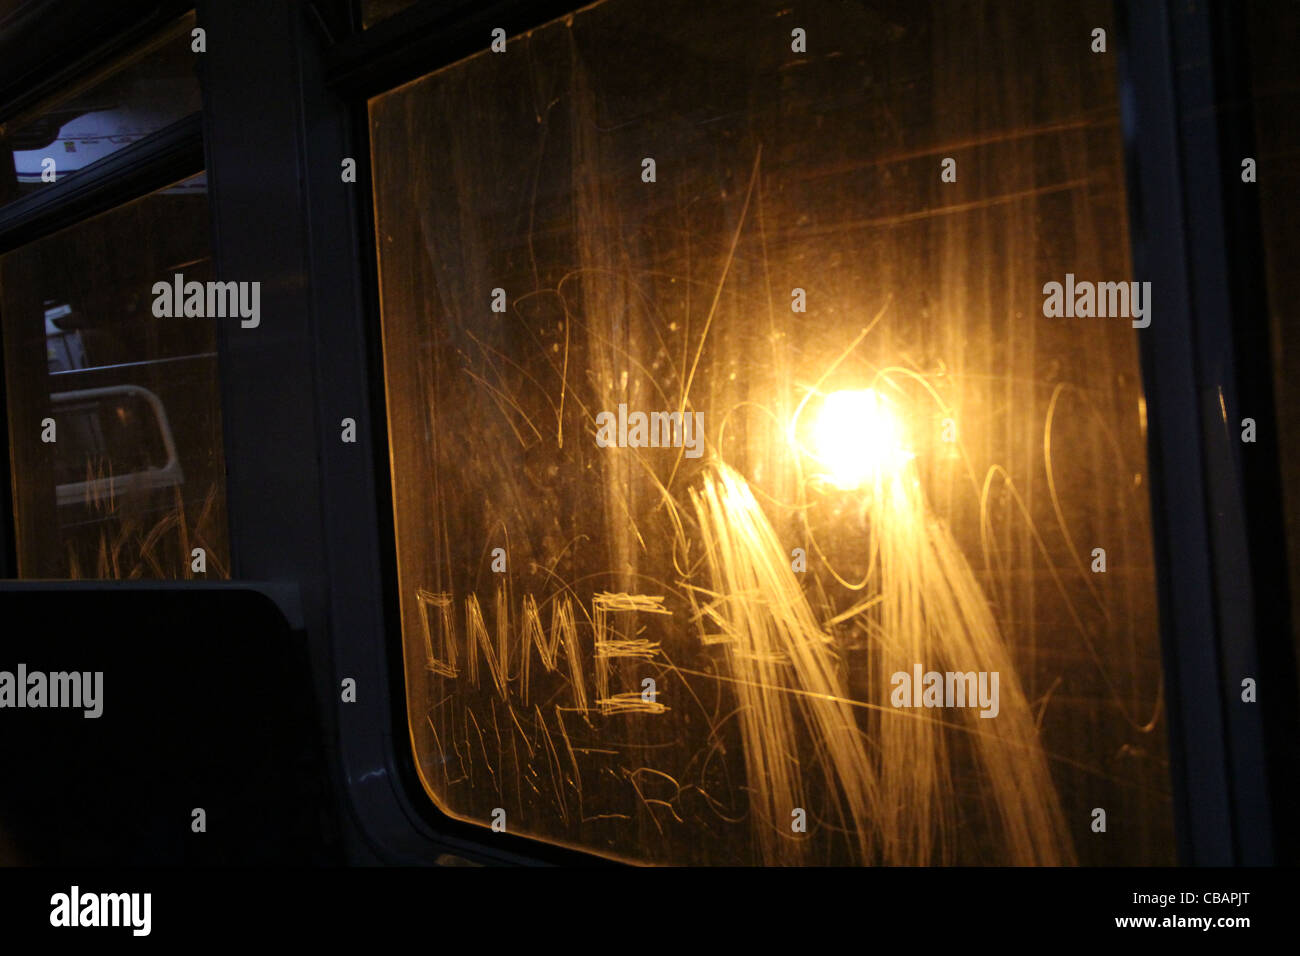 View from inside tube carriage looking towards a light which illuminates graffiti on the train window. Vandalism - Stock Image